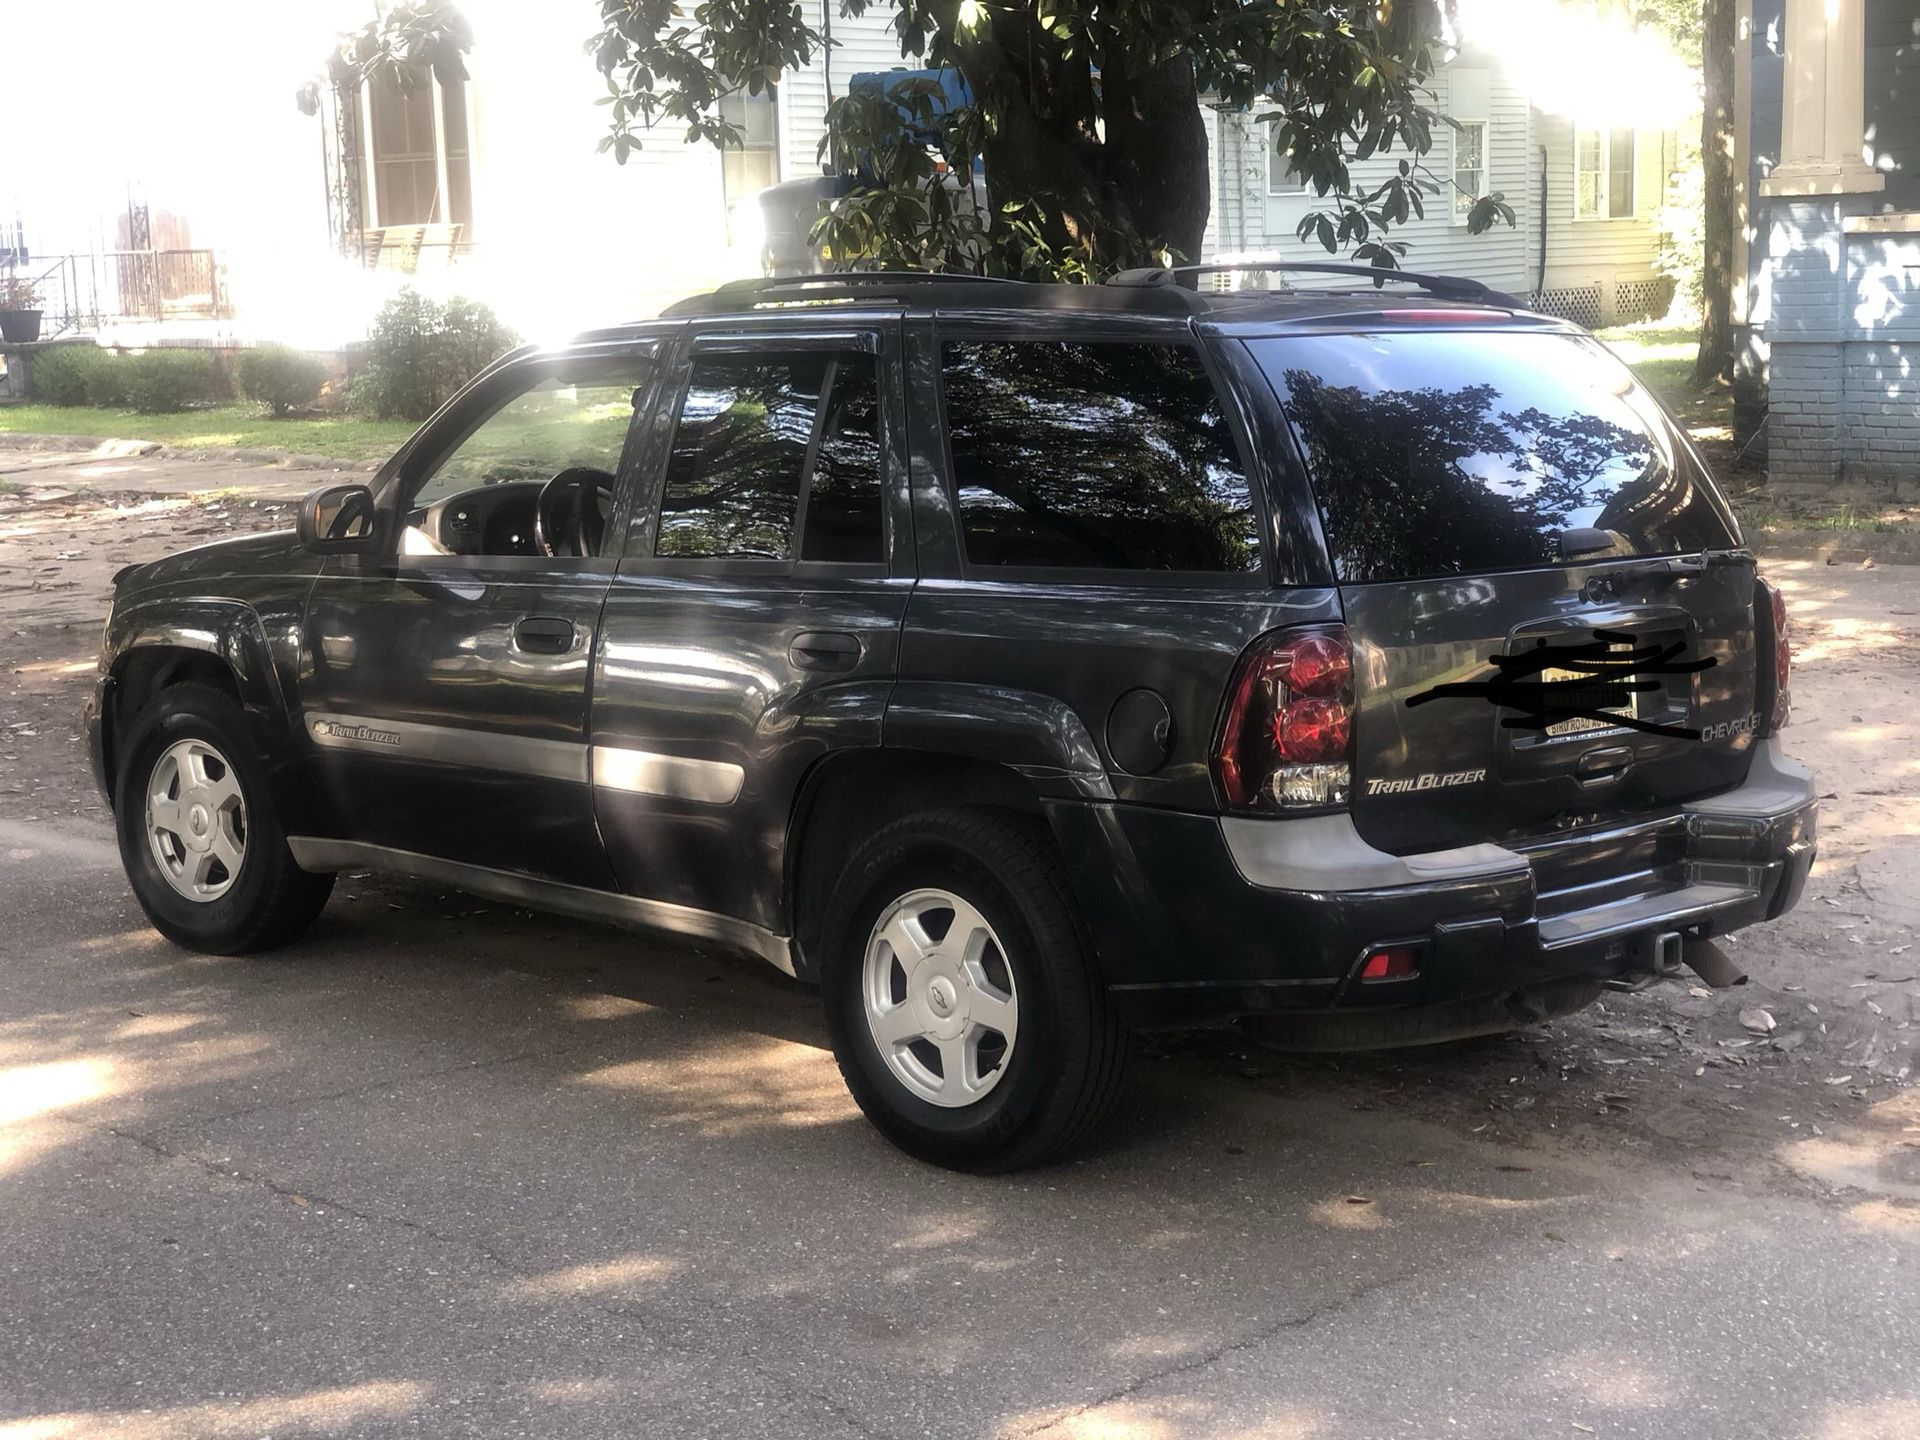 Photo I have a 2003 trailblazer runs Great it can literally go anywhere. looking to trade for Mustang but Im asking 4,000